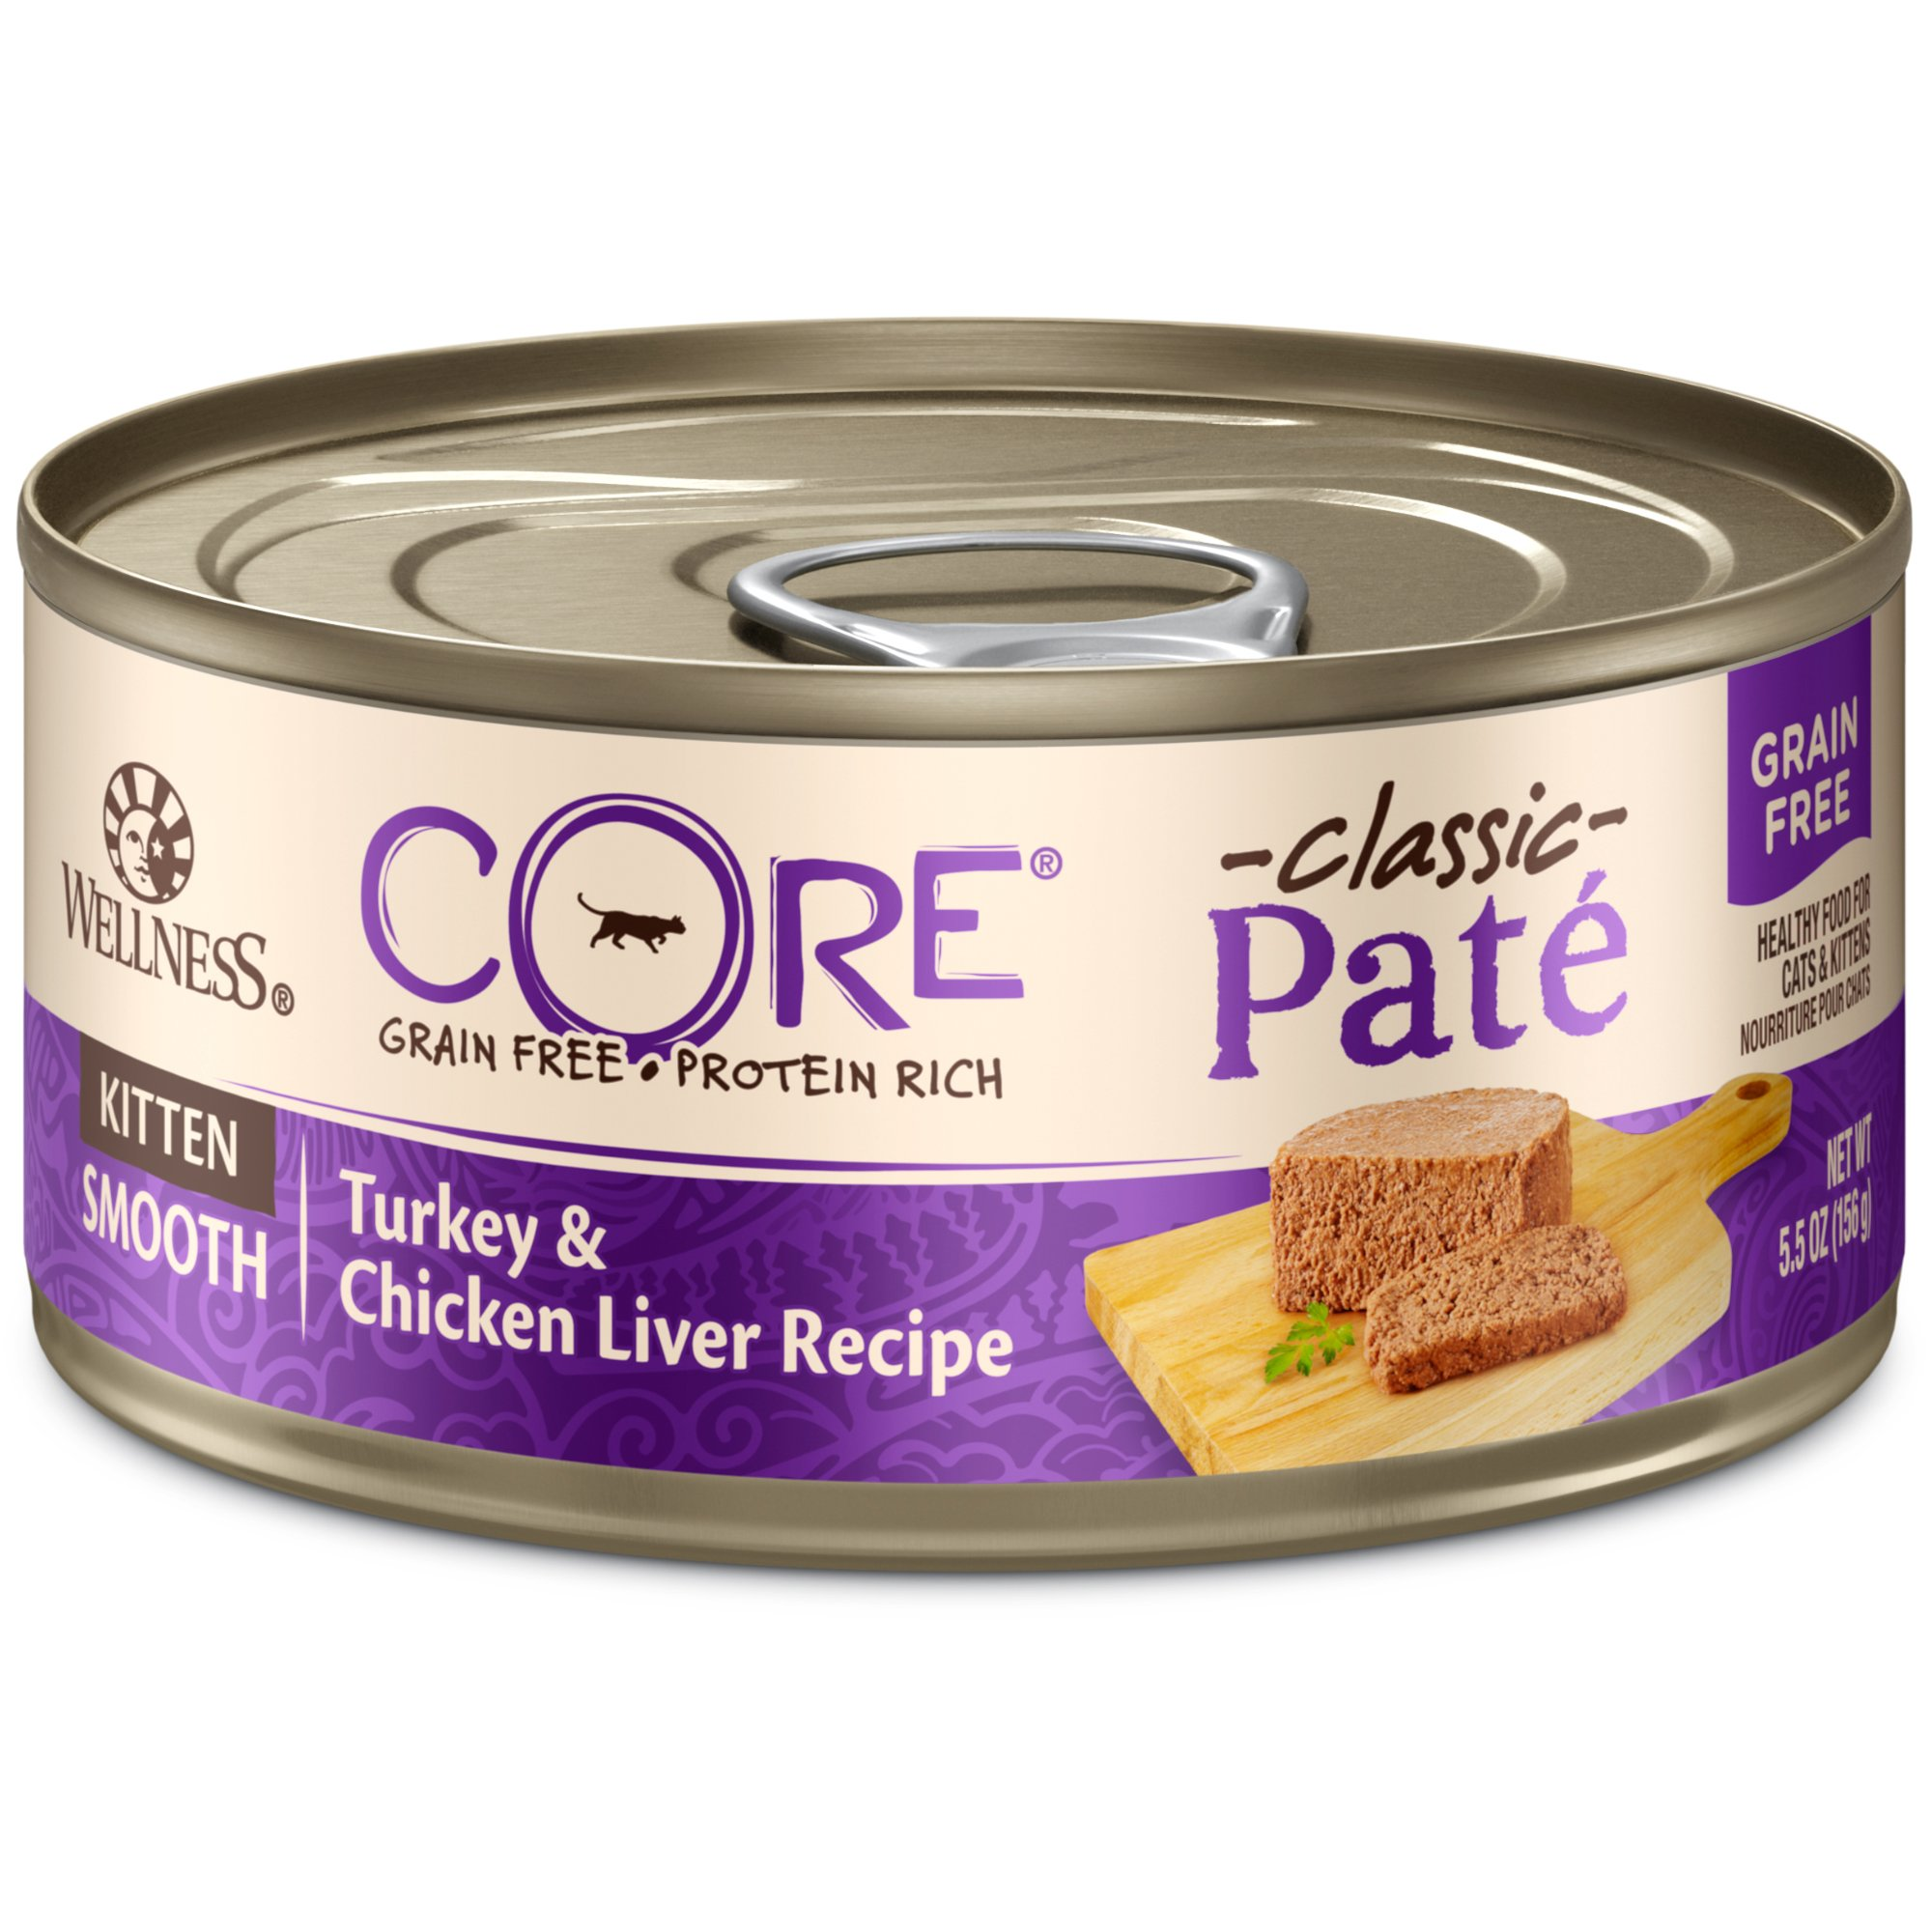 Wellness Core Natural Grain Free Wet Canned Cat Food, Kitten Turkey & Chicken Liver, 5.5-Ounce Can, Pack Of 24 by WELLNESS CORE